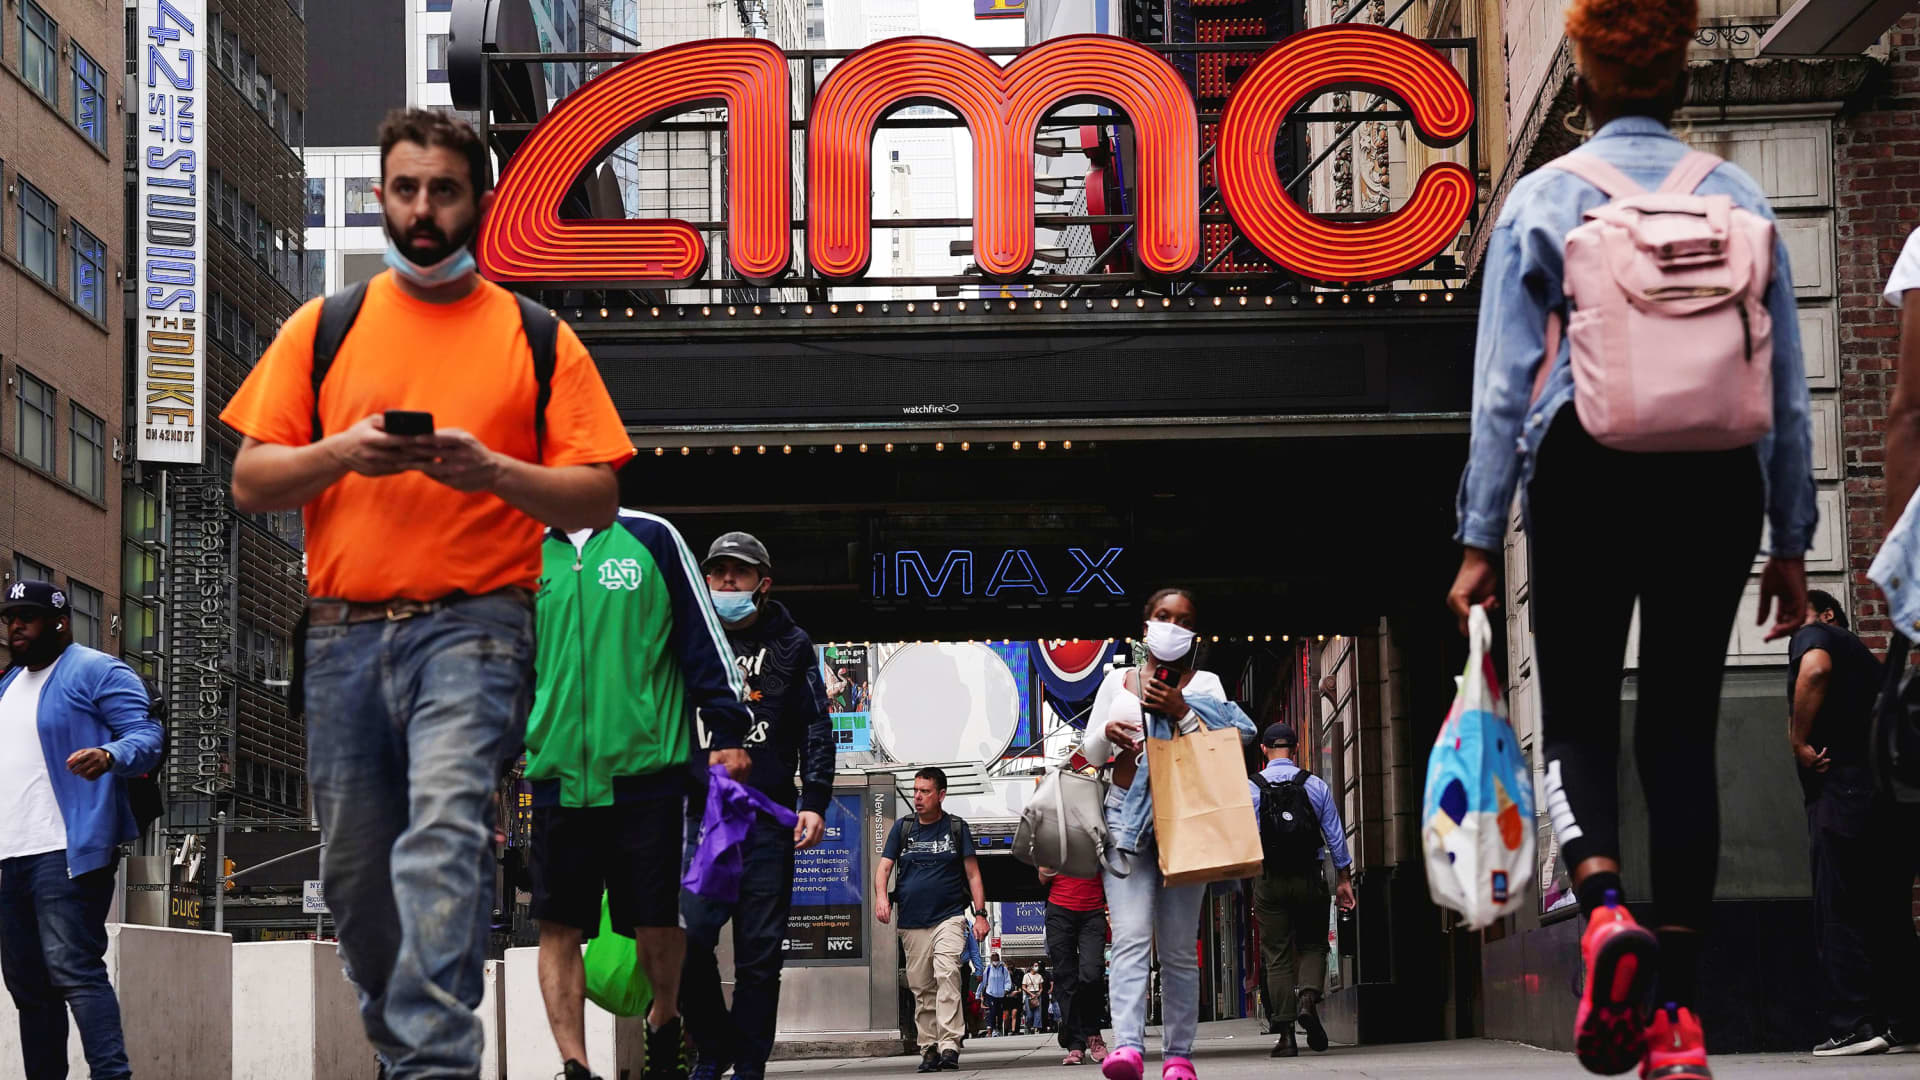 An AMC theatre is pictured in Times Square in the Manhattan borough of New York City, New York, June 2, 2021.